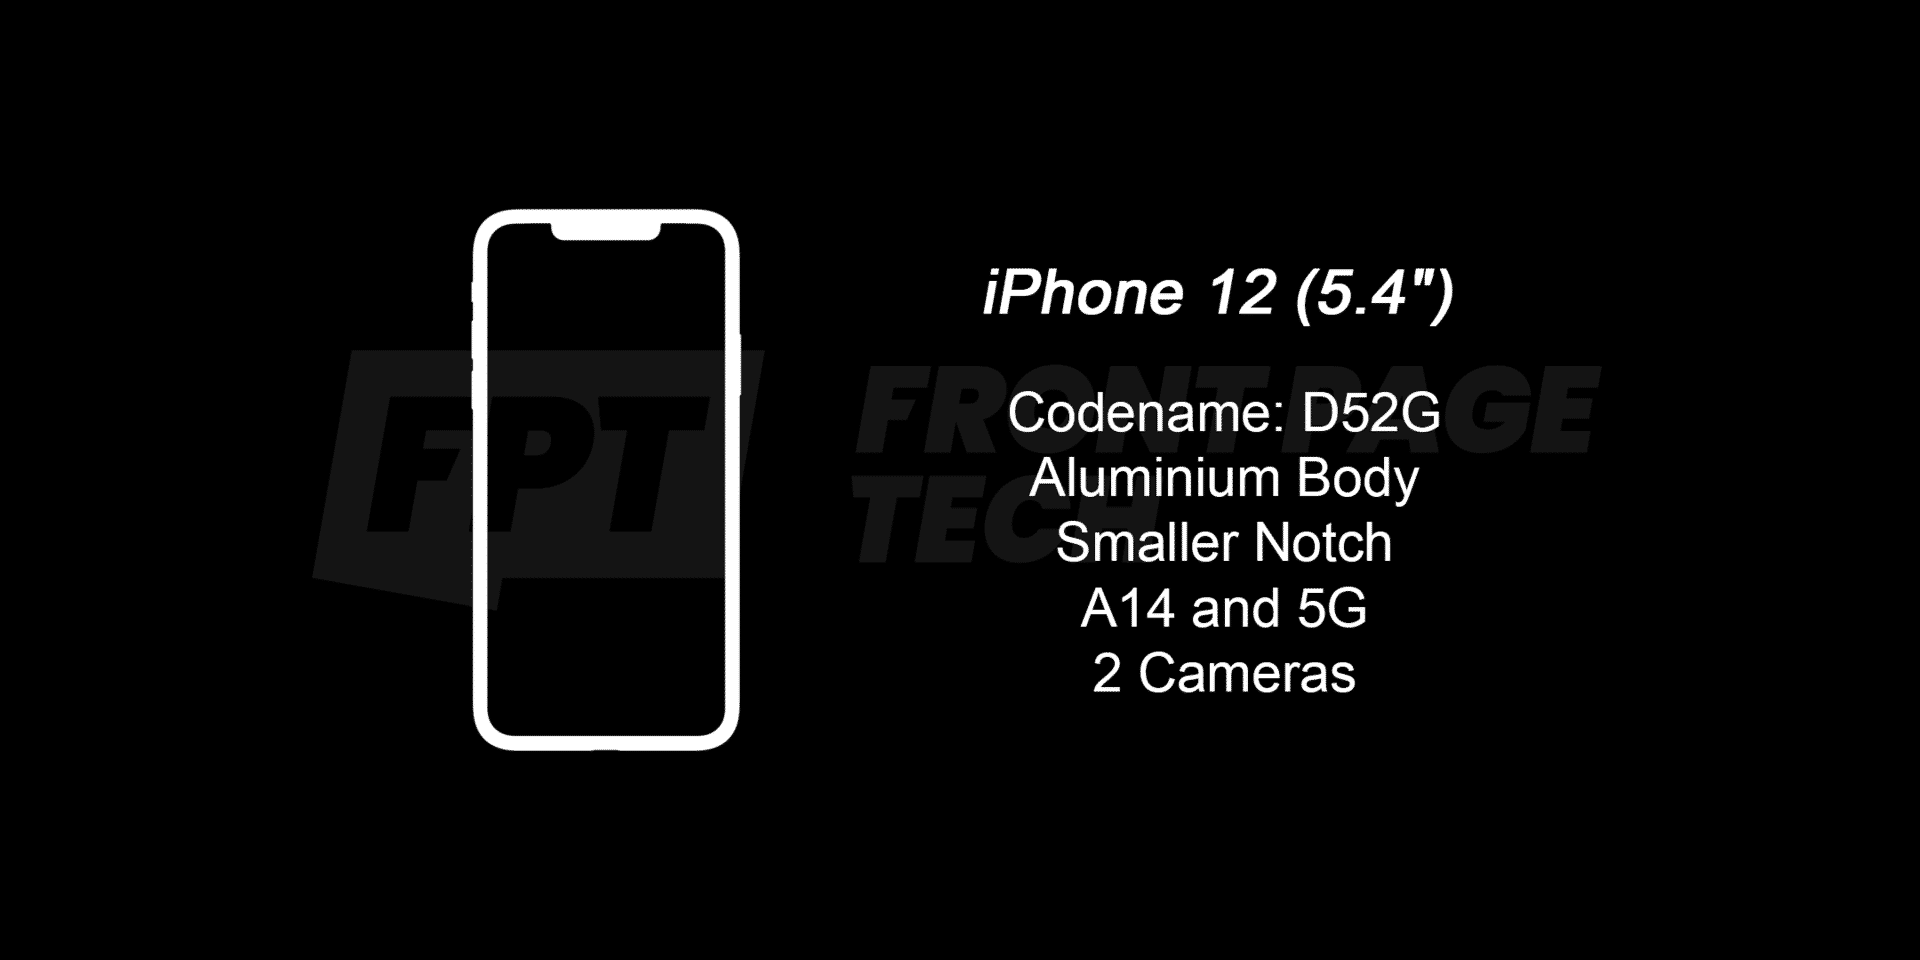 iPhone 12 5.4″ to cost $549, rumor suggests